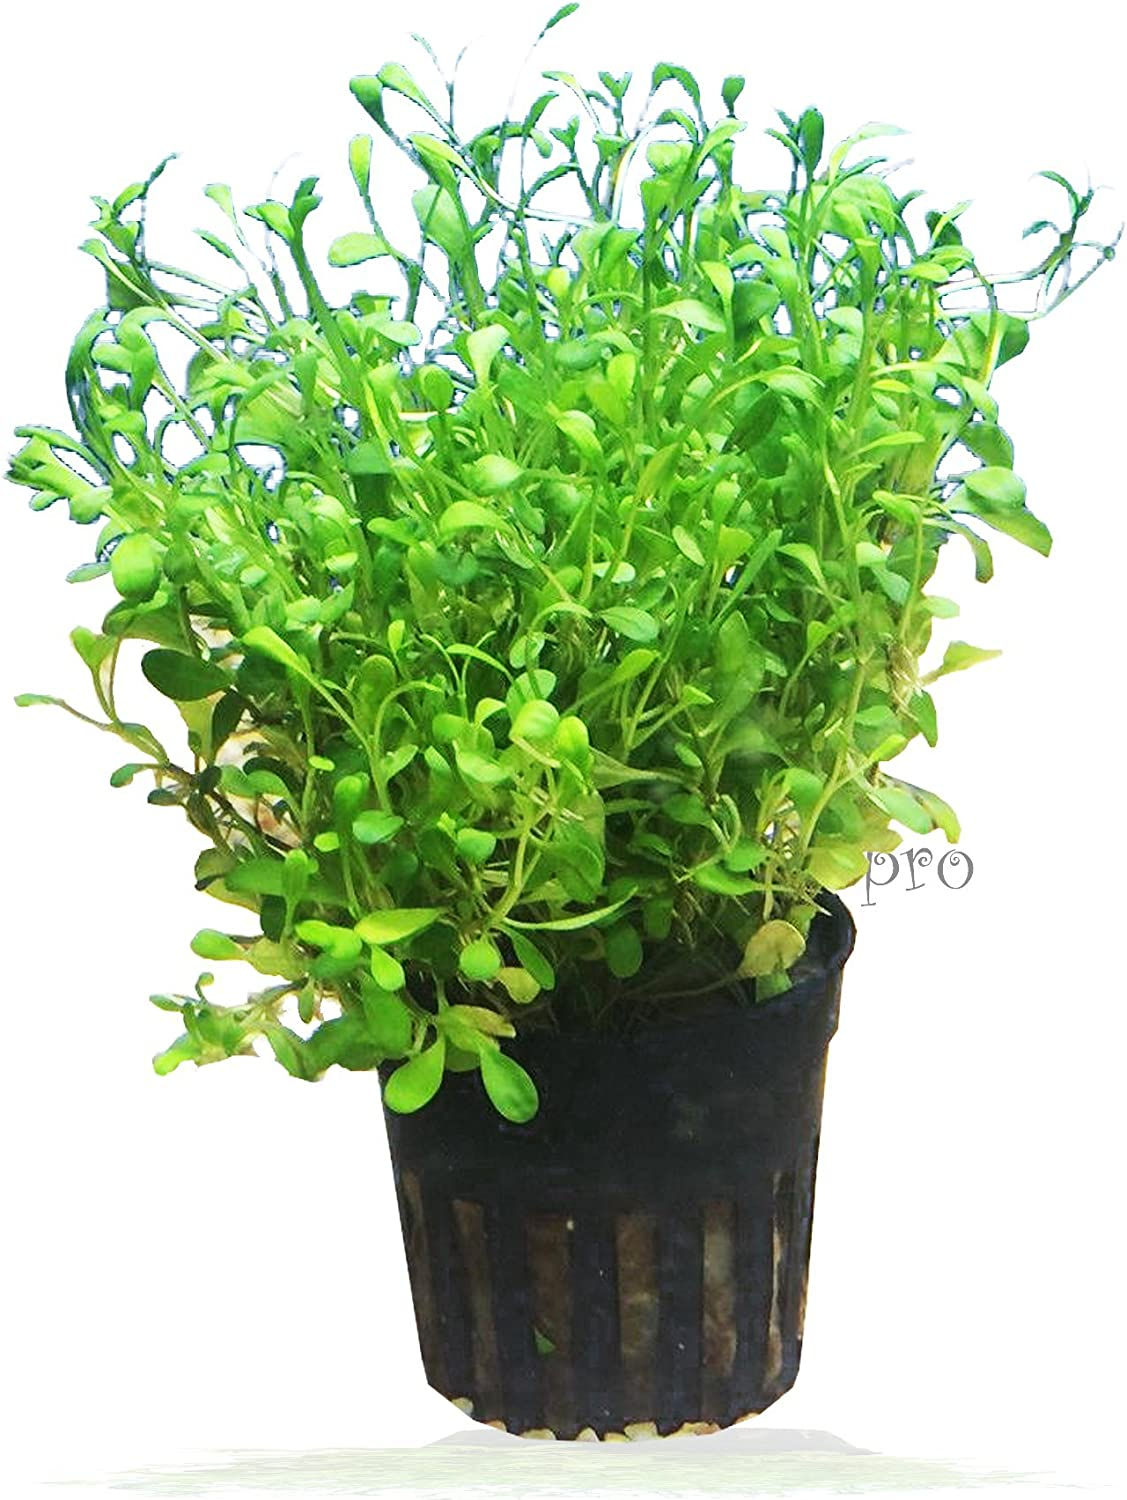 3 Carpet Plants Package Dwarf Baby Tears Dwarf Hairgrass and Glosso Potted Live Aquatic for Aquarium Freshwater Fish Tank by Greenpro